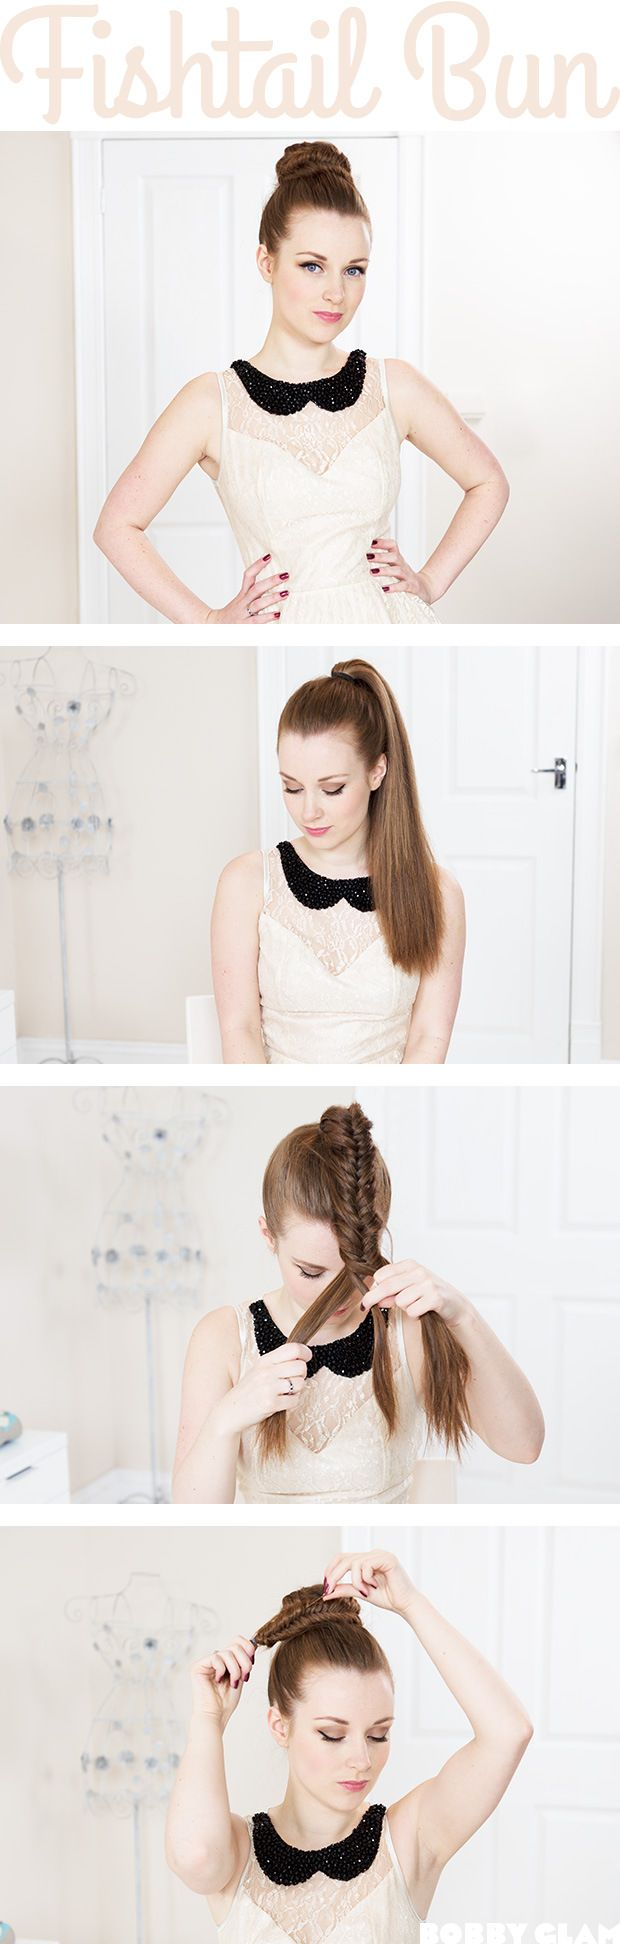 10 Fishtail Bun Instructions